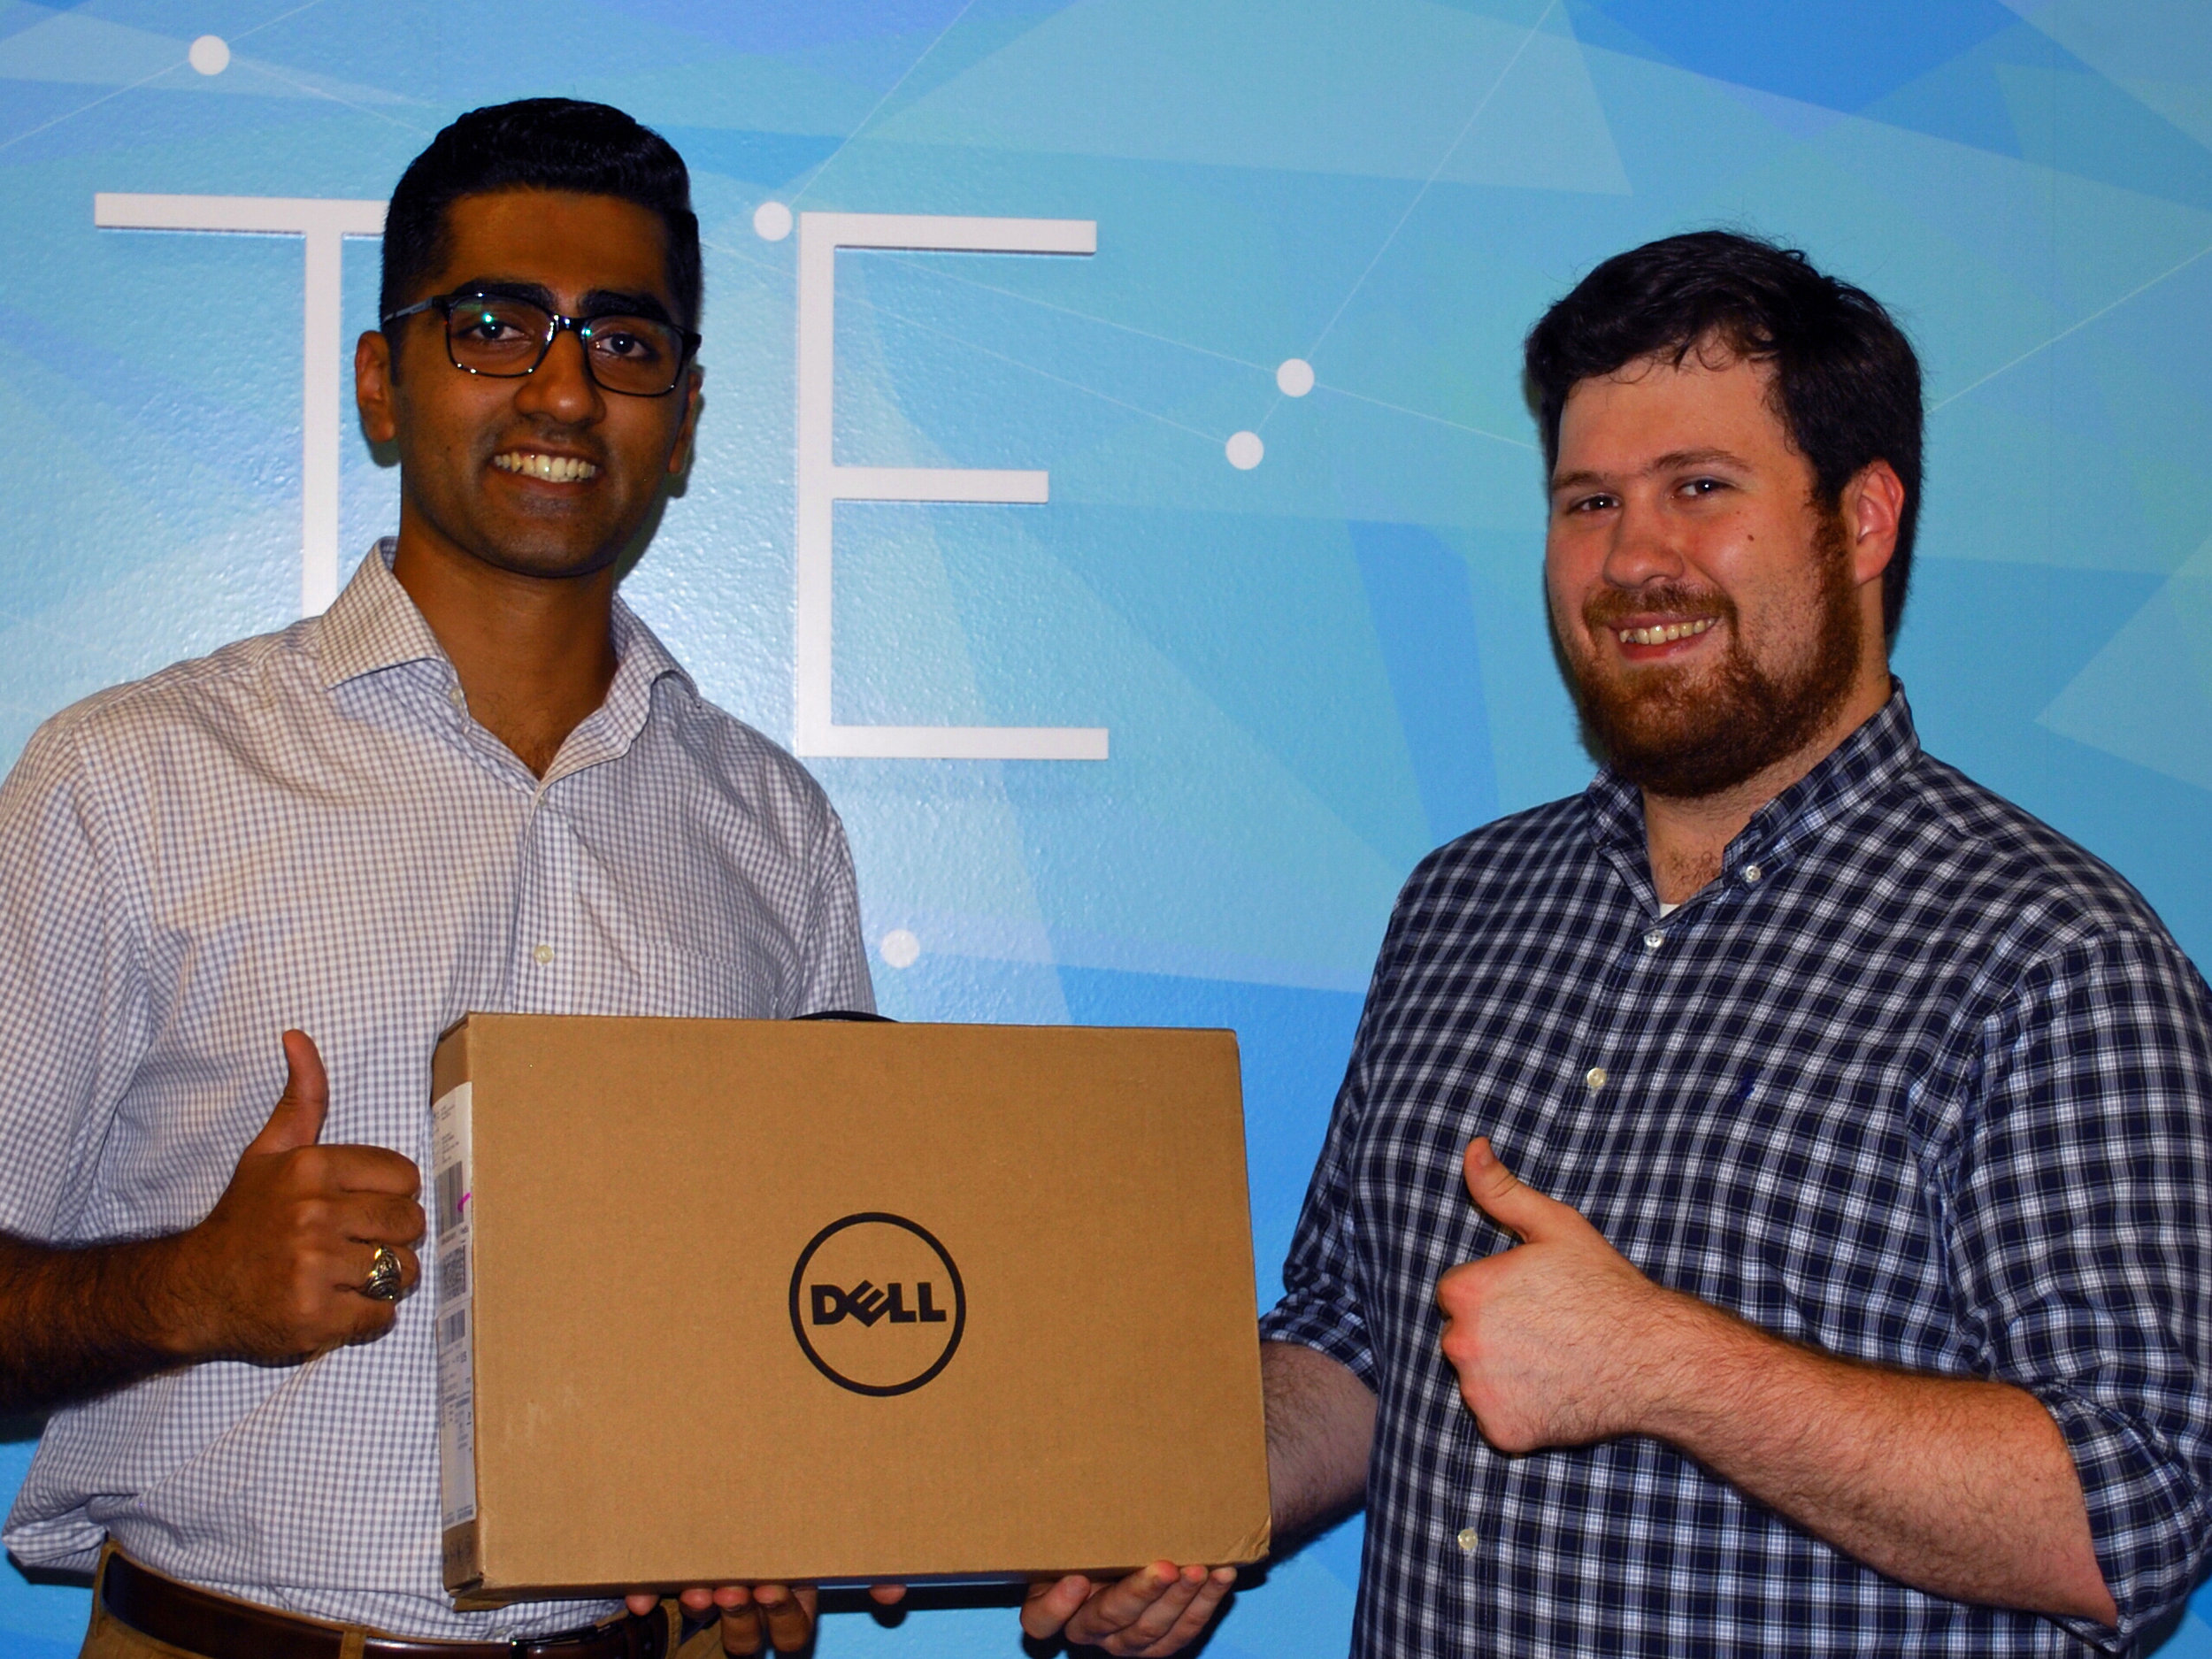 Last year's winner Zaid Nasir presenting this year's winner, Jeremy Klutts, with his prize.